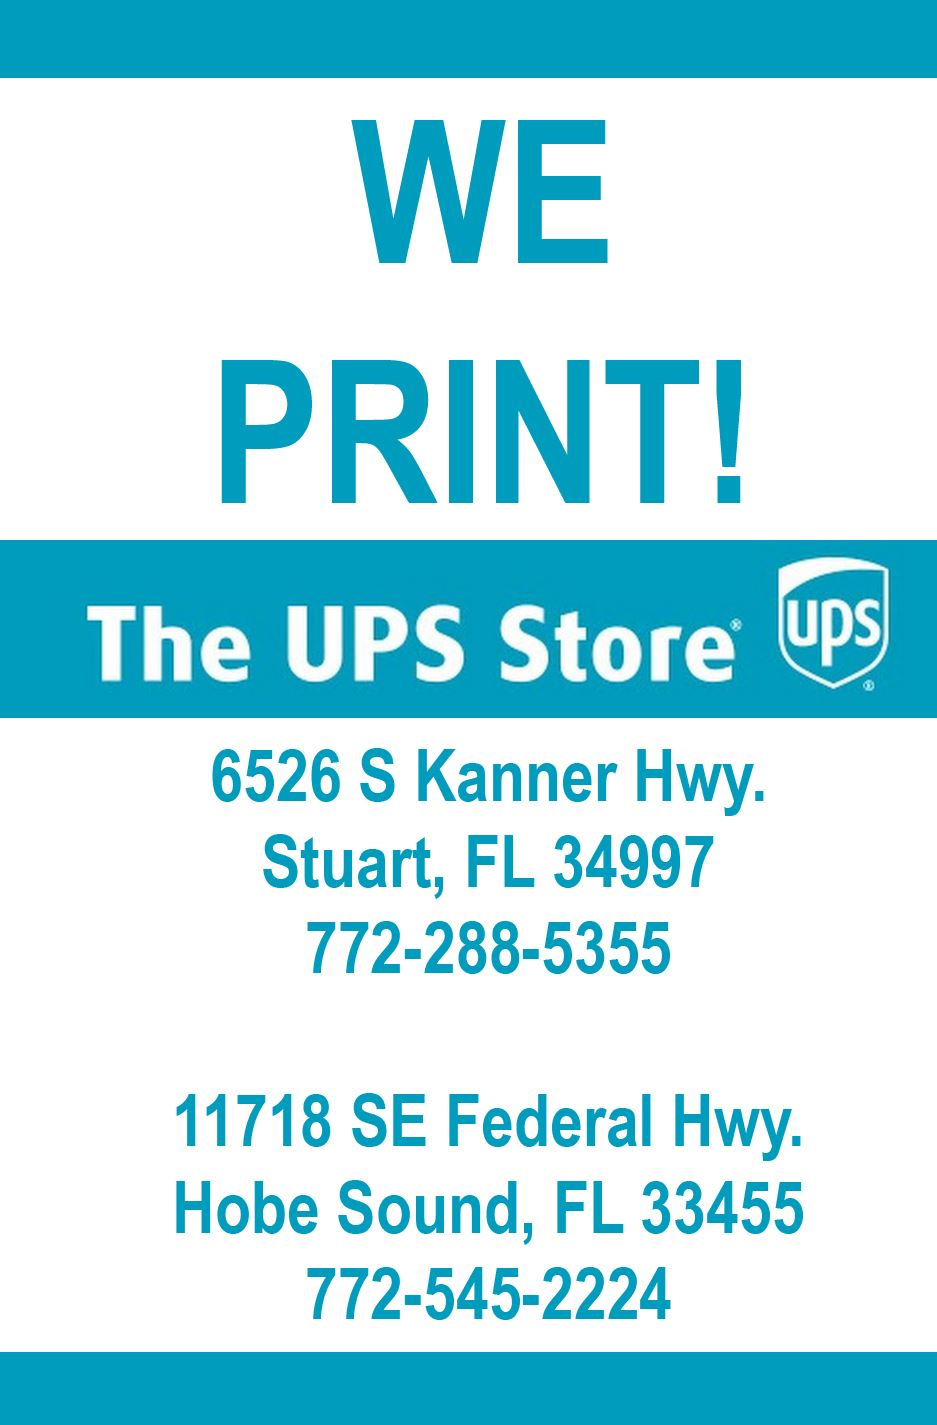 UPS Store Logow addresses jpeg